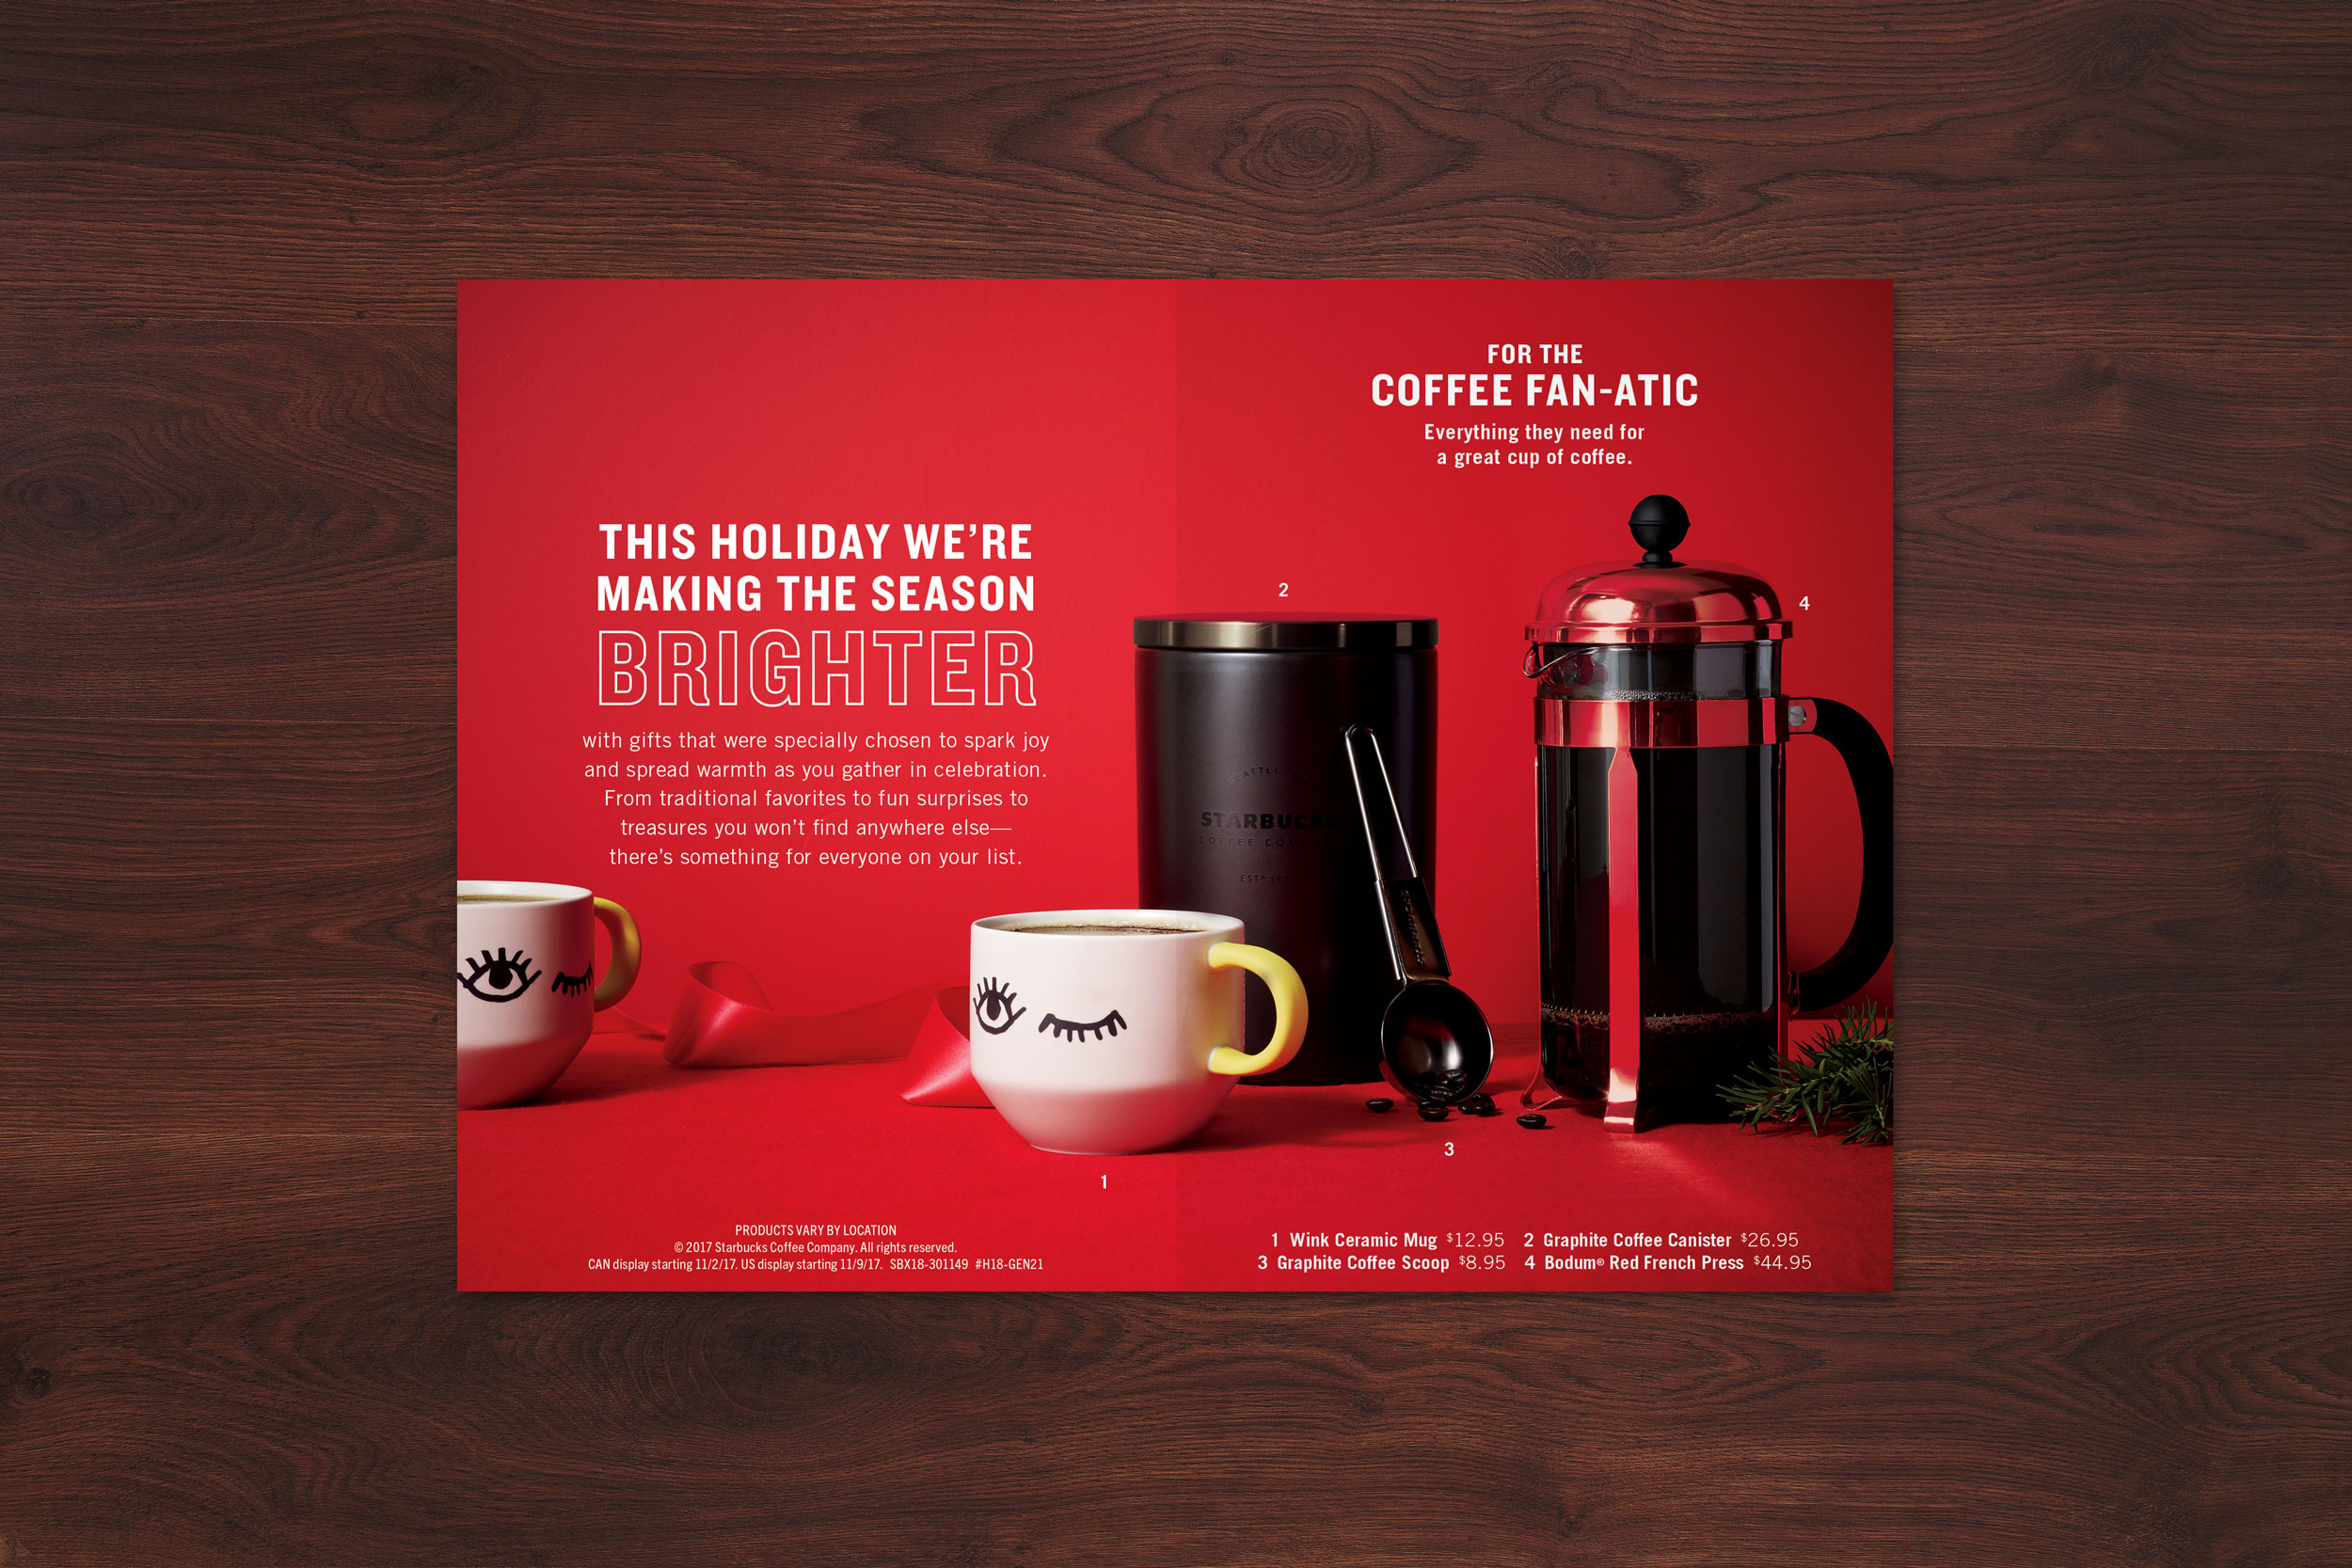 Holiday-Gift-Guide-Coffee-Fan-atic-DETAIL.jpg